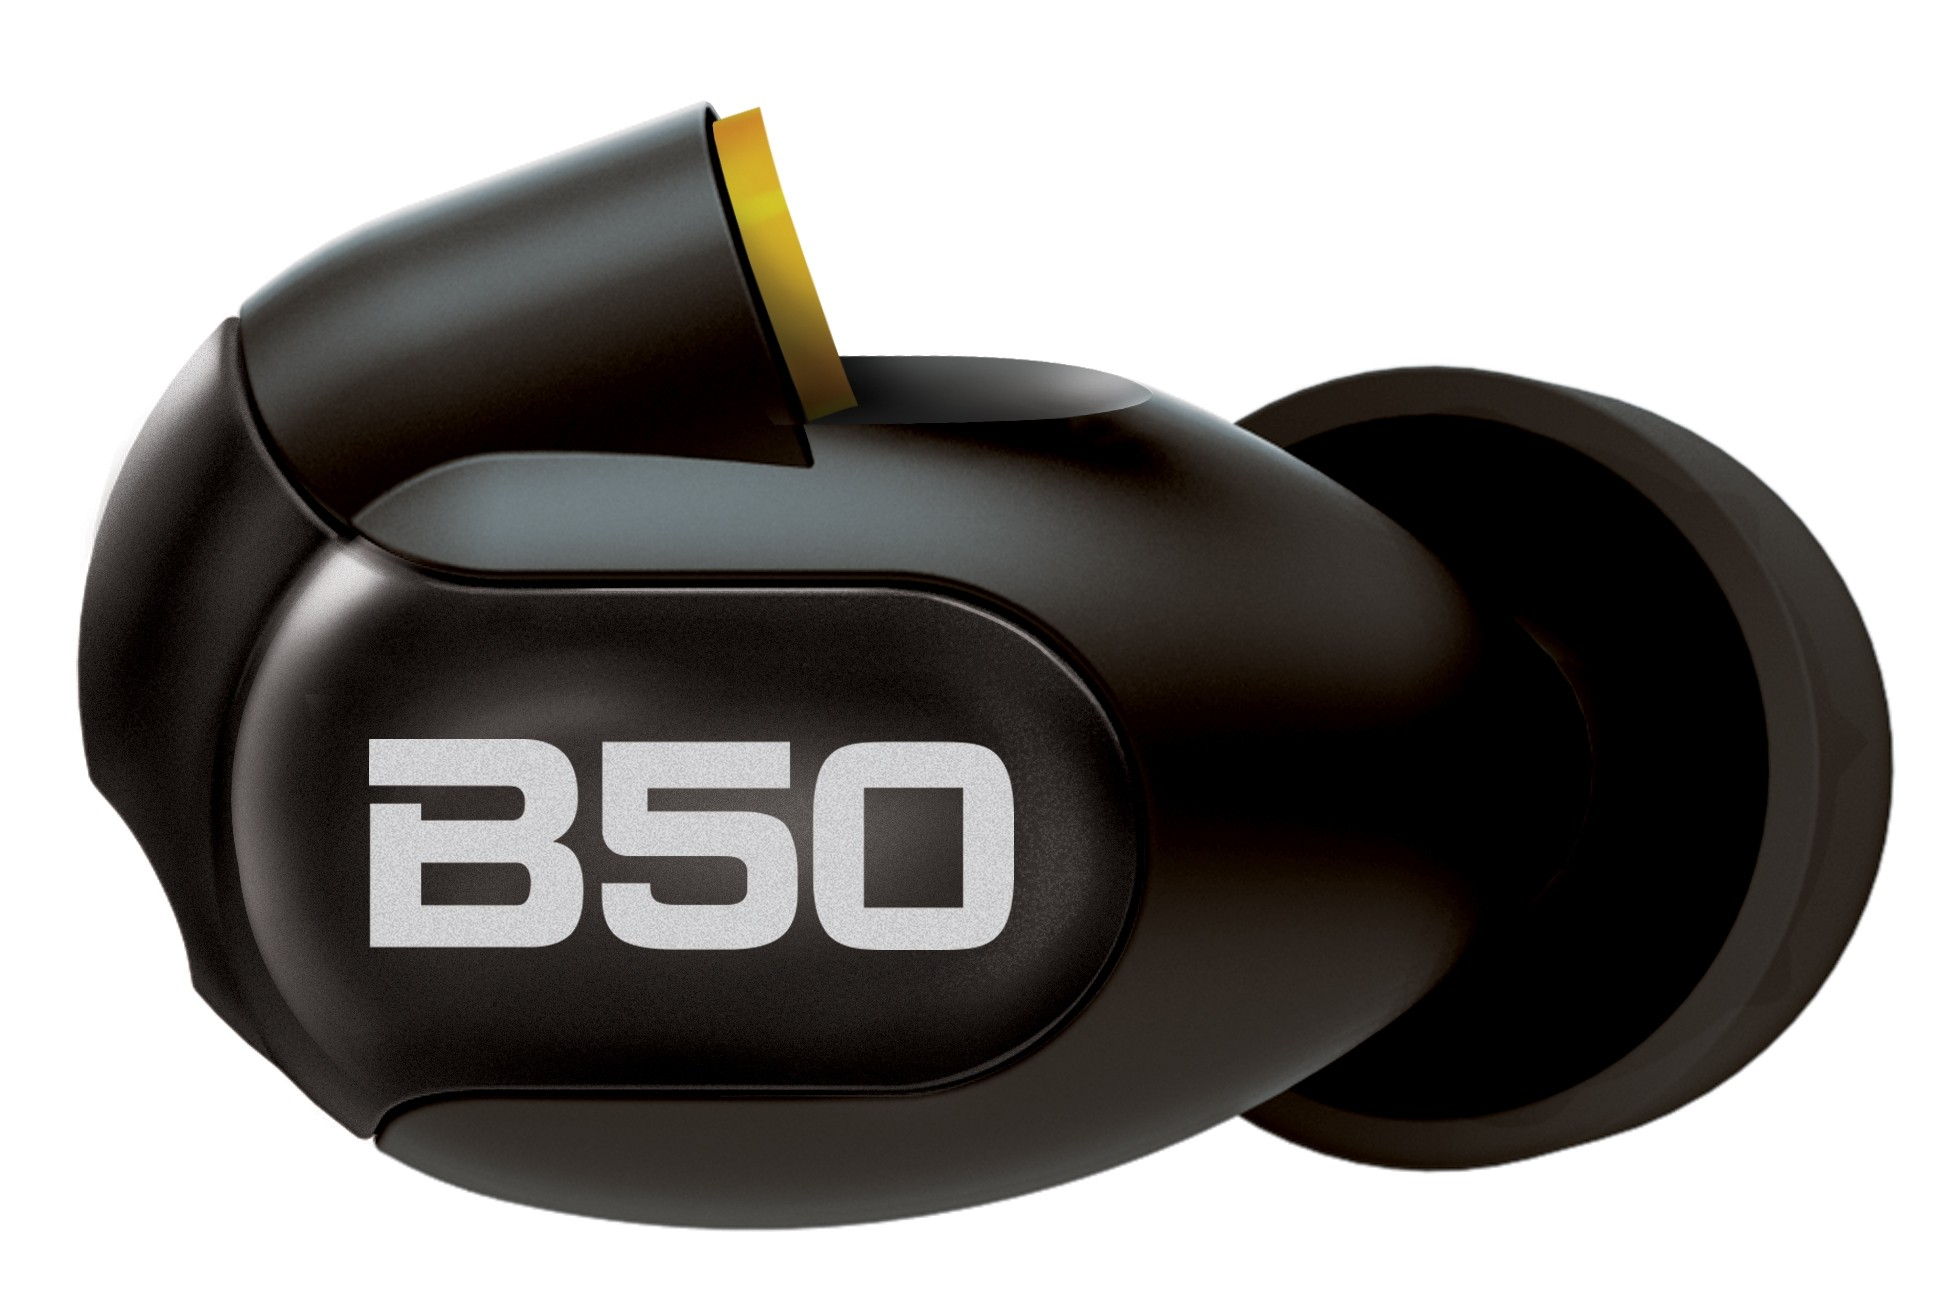 B50 Earphones